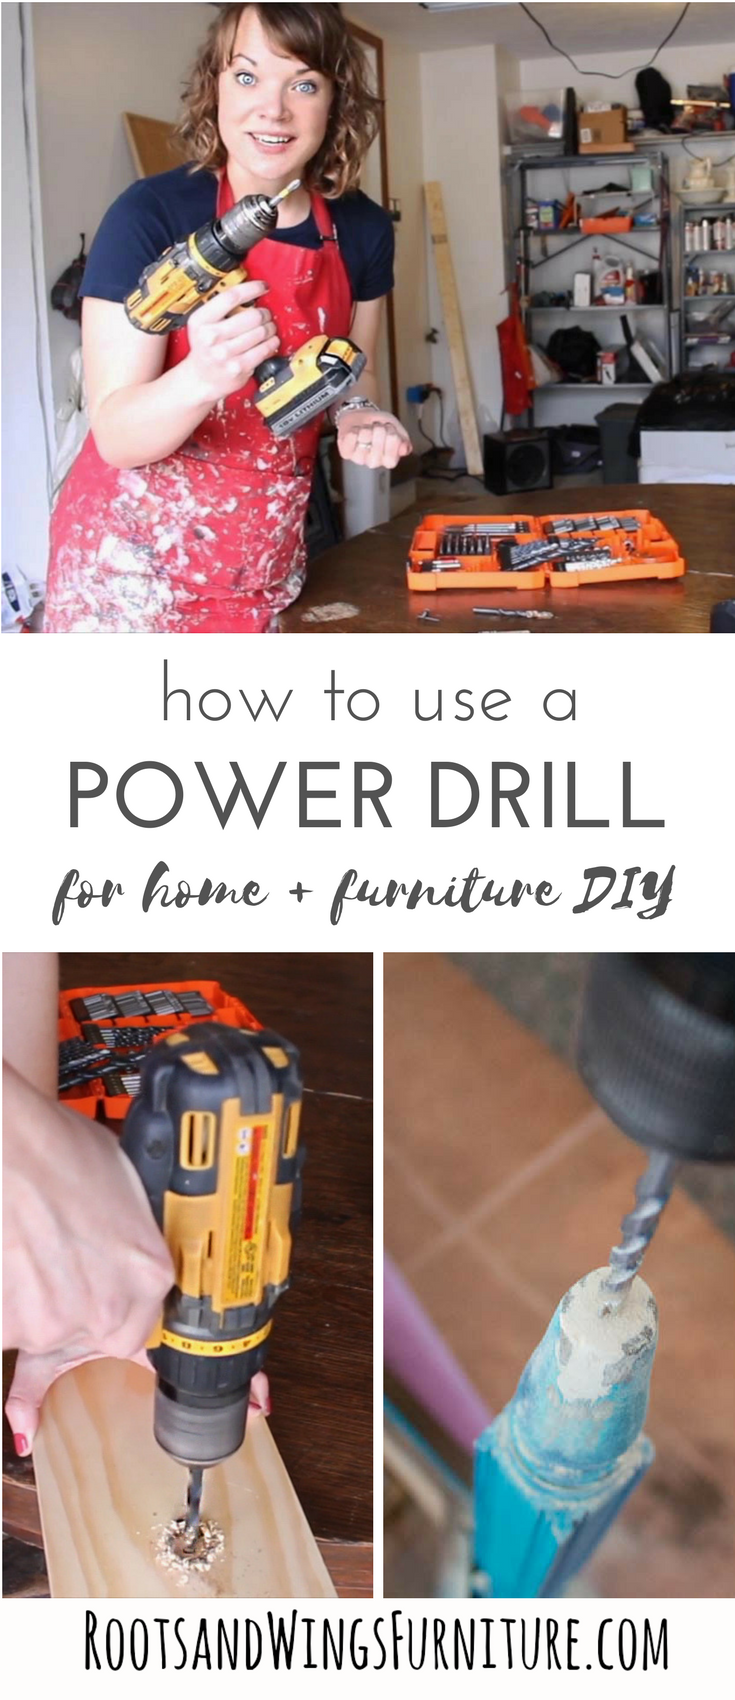 How to use a Power Drill by Roots and Wings Furniture _ Tool Talk_ The Cordless Drill.png